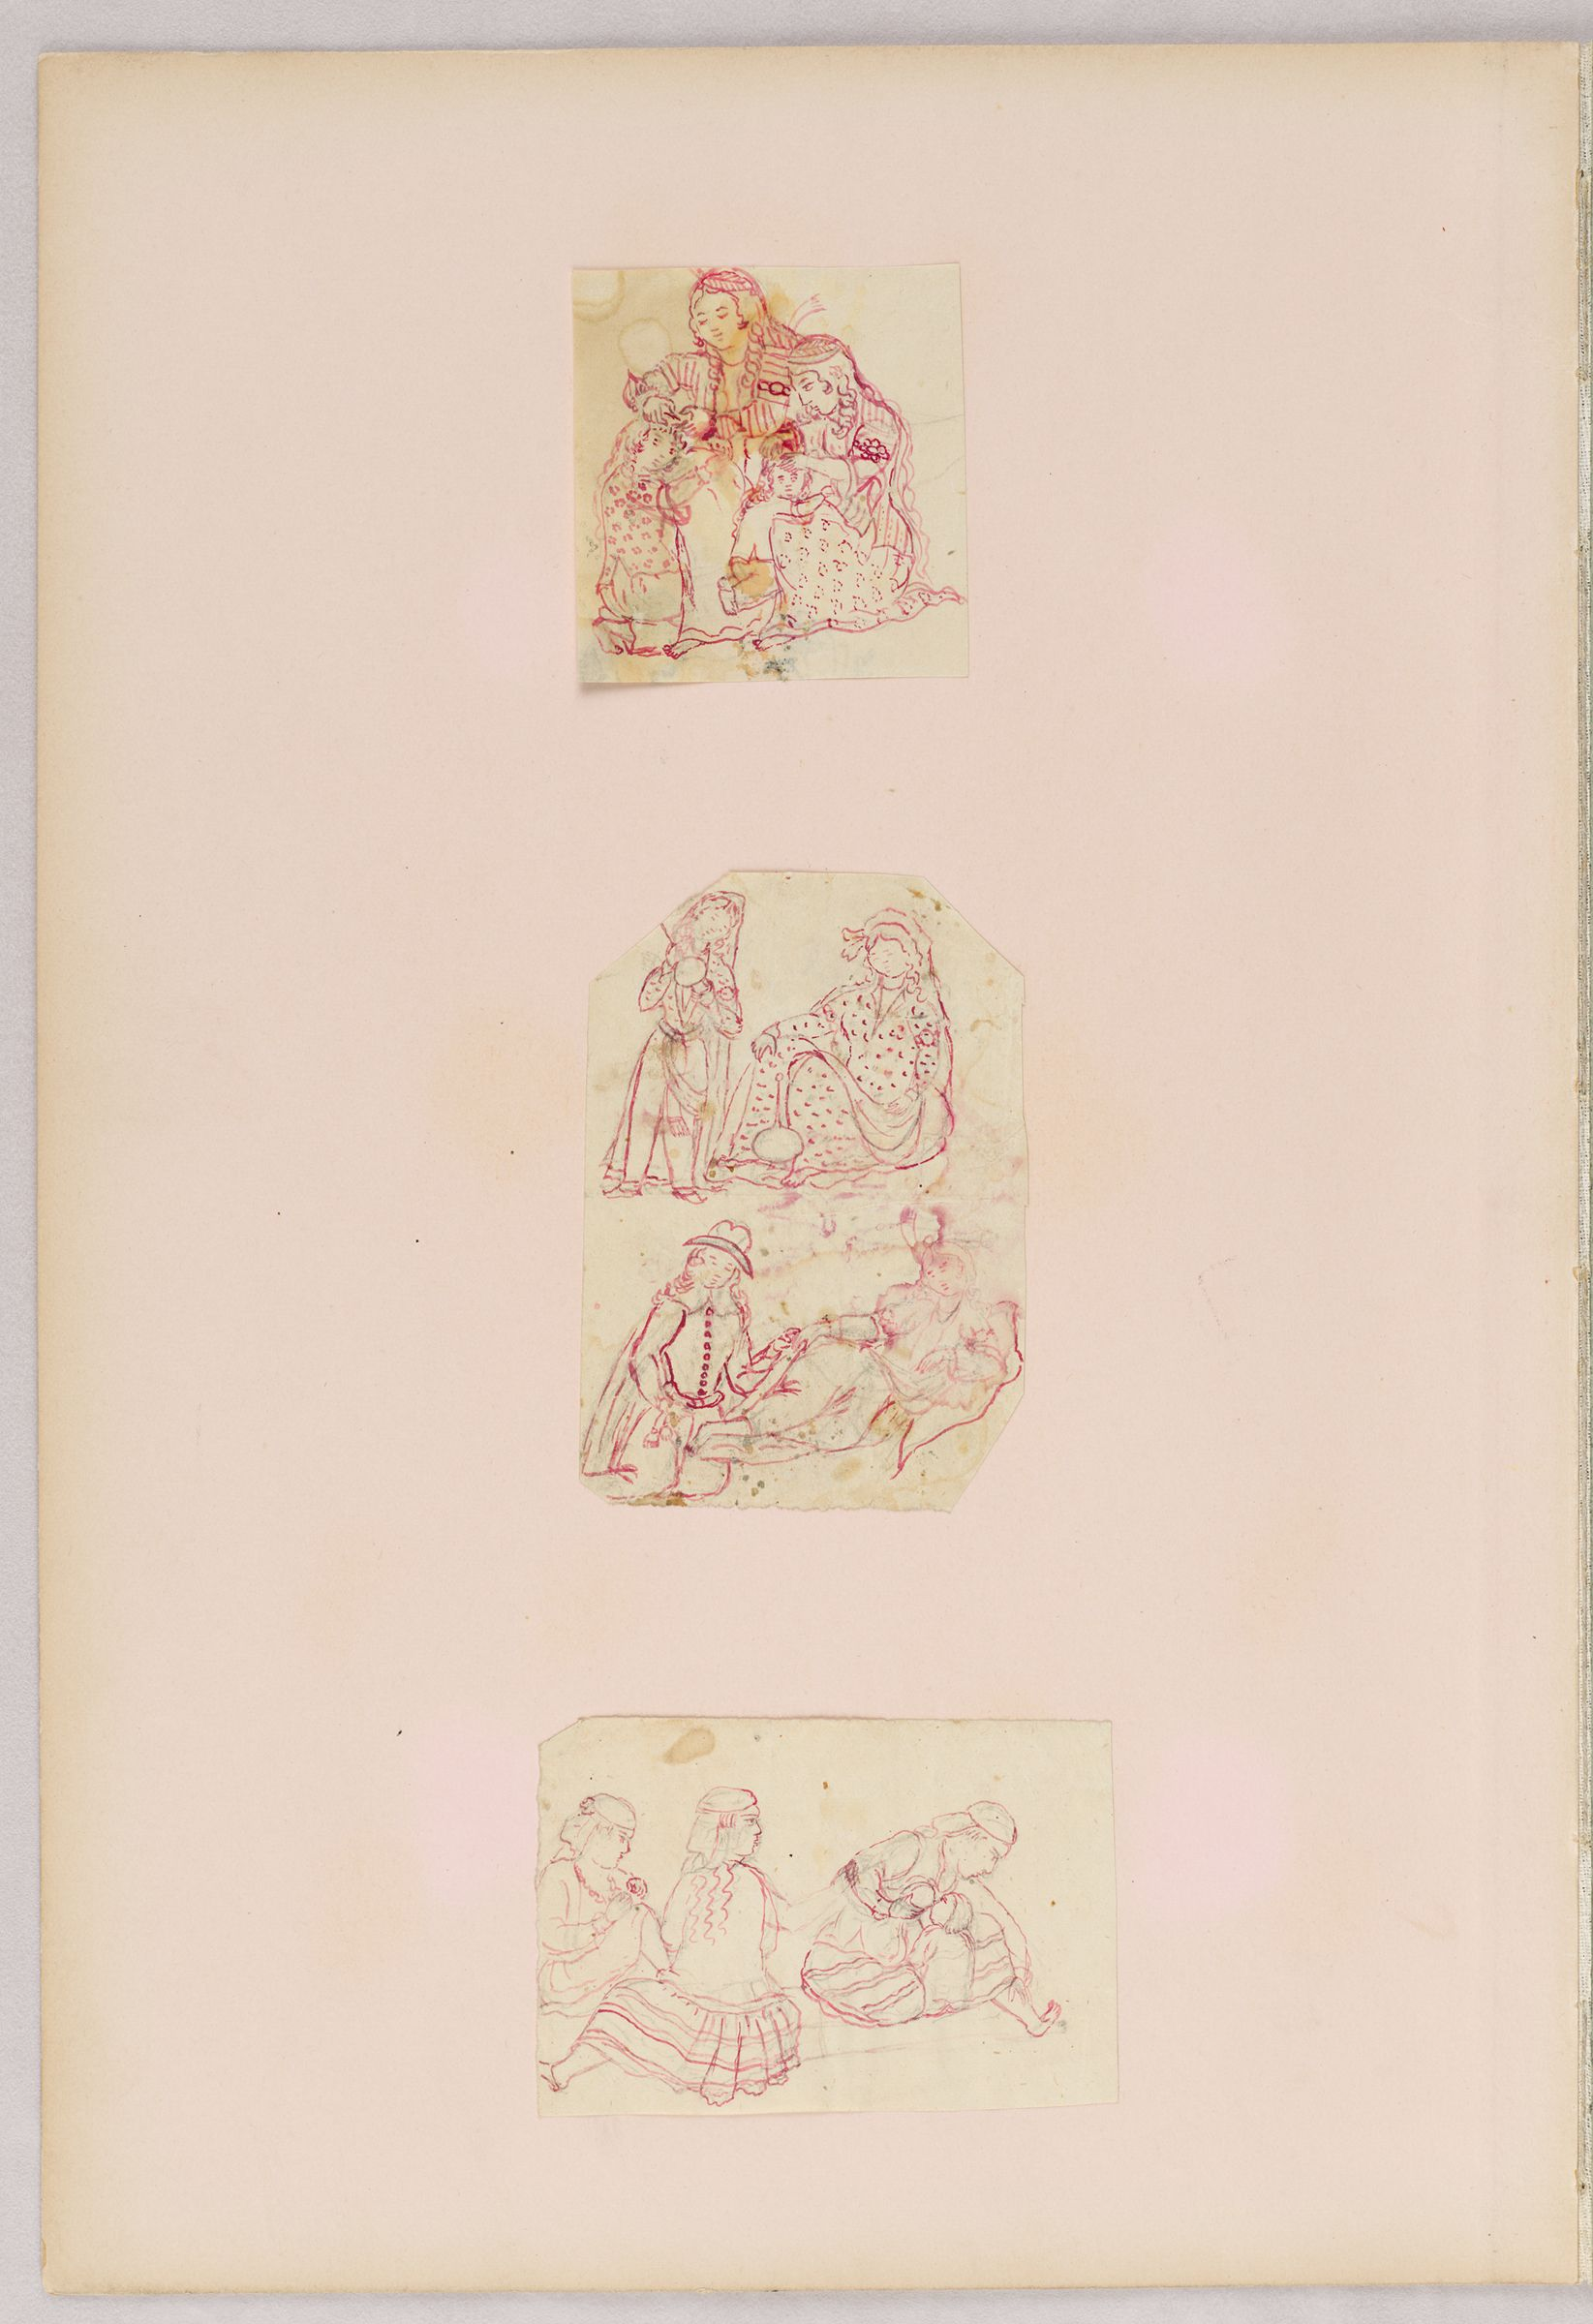 Folio 39 From An Album Of Drawings And Paintings: Three Sheets: Women Delousing Children; Women With European Man; Women With Nursing Child (Recto); Fingernail Drawing: Child In Classical Garb (Verso)